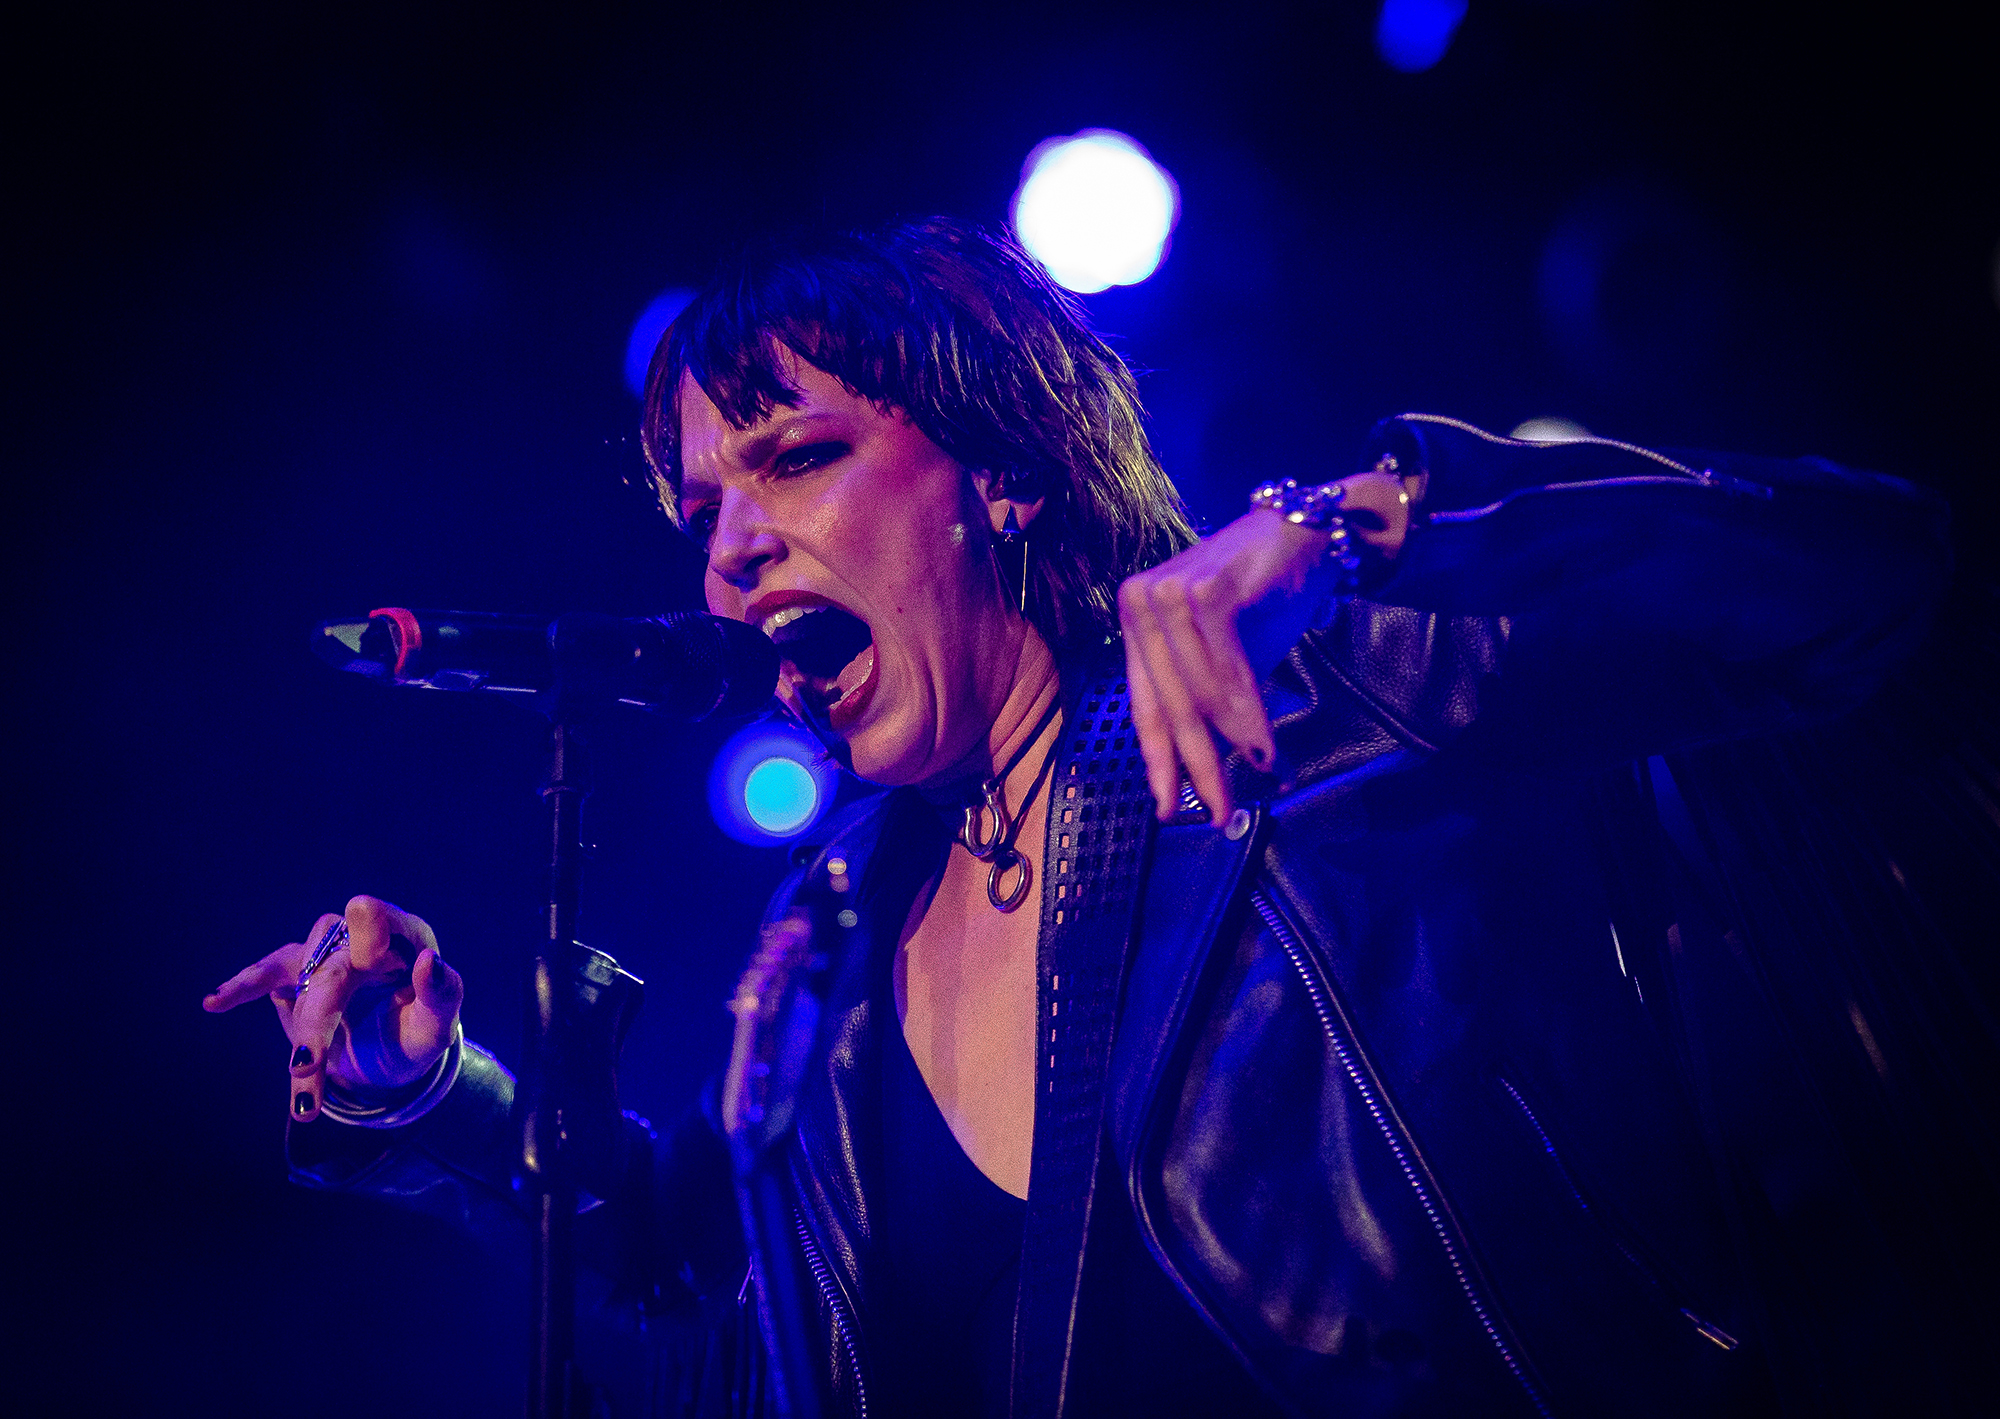 Lead singer and guitarist Lzzy Hale performs with Halestorm as the band performs on the Grandstand Stage during the Illinois State Fair, Saturday, Aug. 11, 2018, in Springfield, Ill. [Justin L. Fowler/The State Journal-Register]